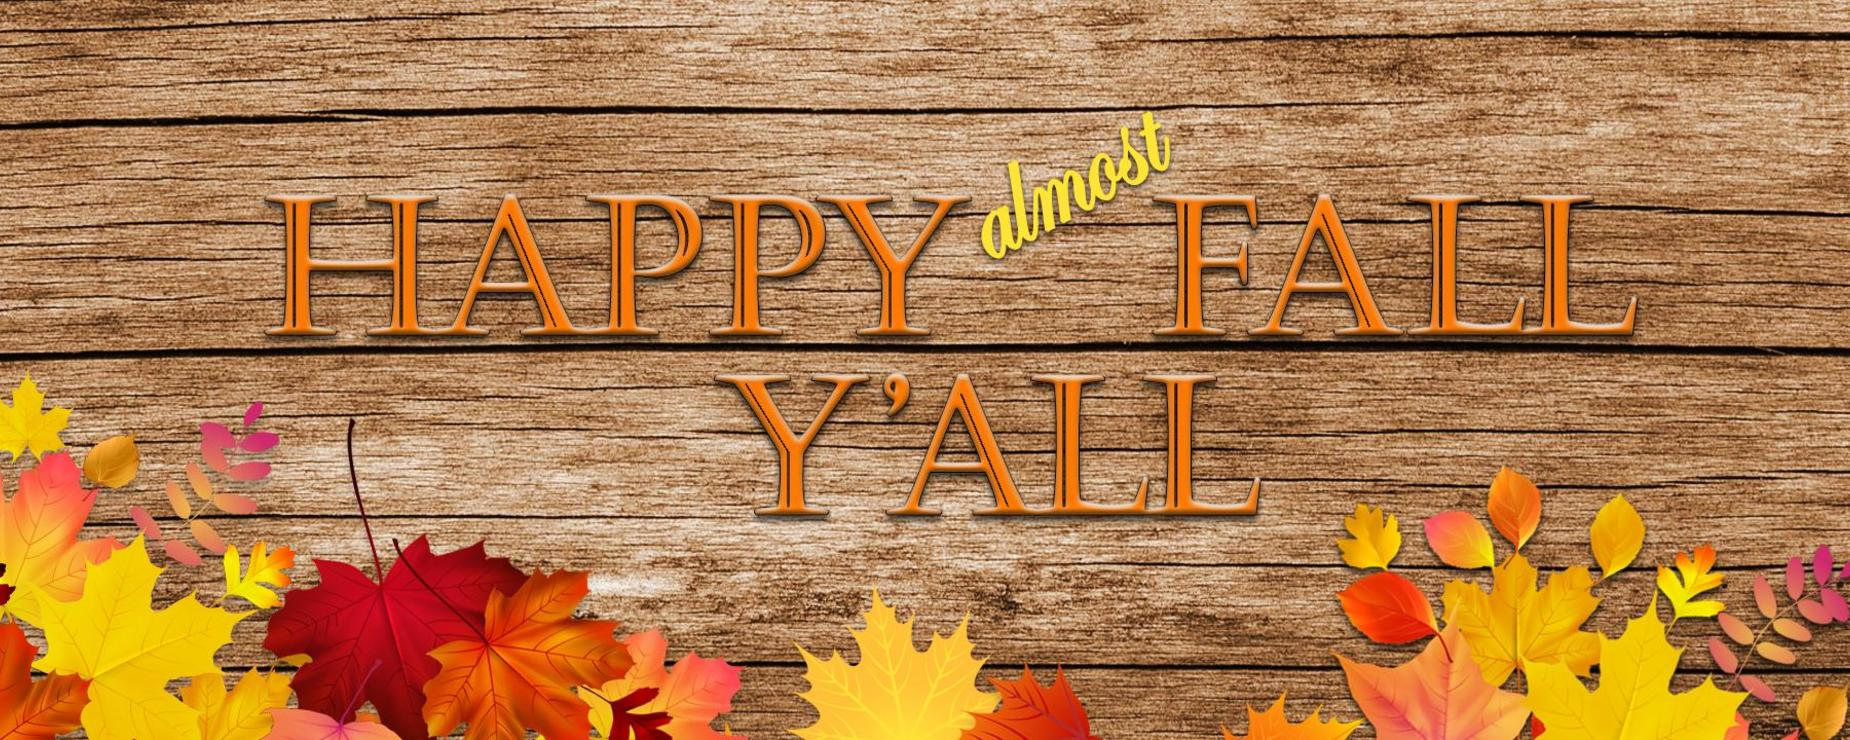 Wood background with fall leaves that says happy almost fall y'all.